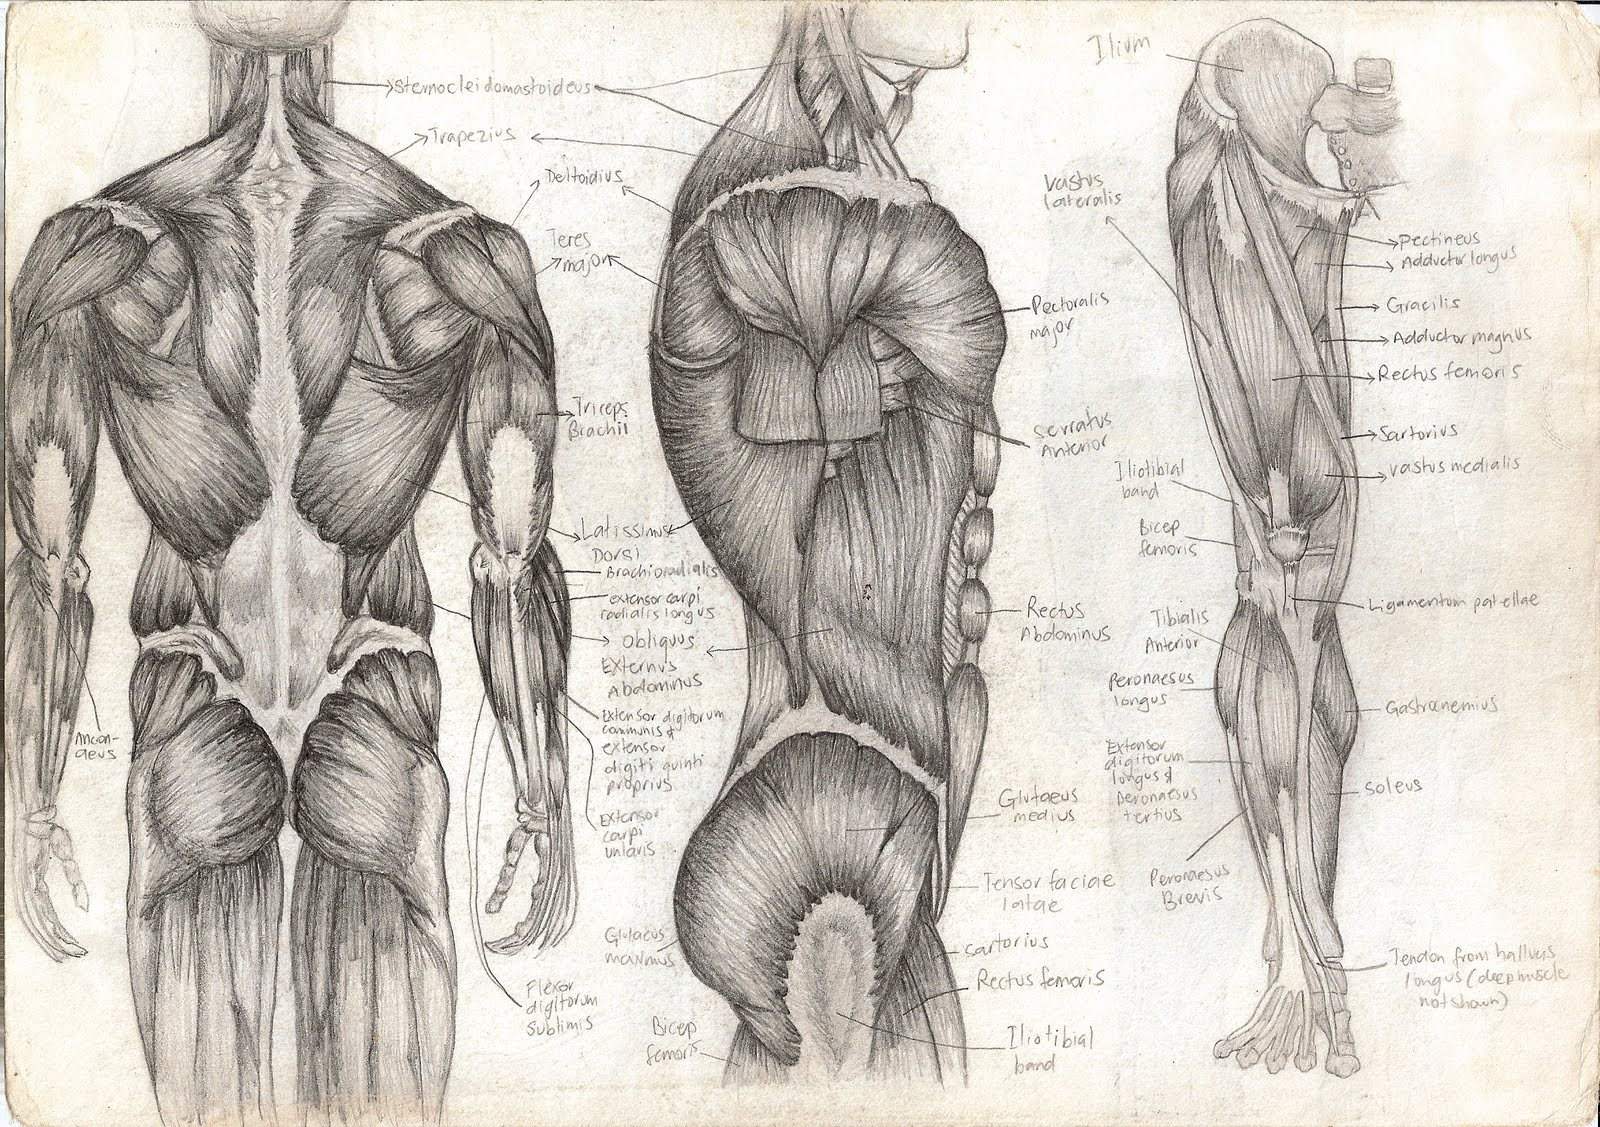 Human Anatomy Drawing At Free For Personal Use Full Body Muscle Diagram 1600x1127 Awesome 29 About Remodel Nervous System